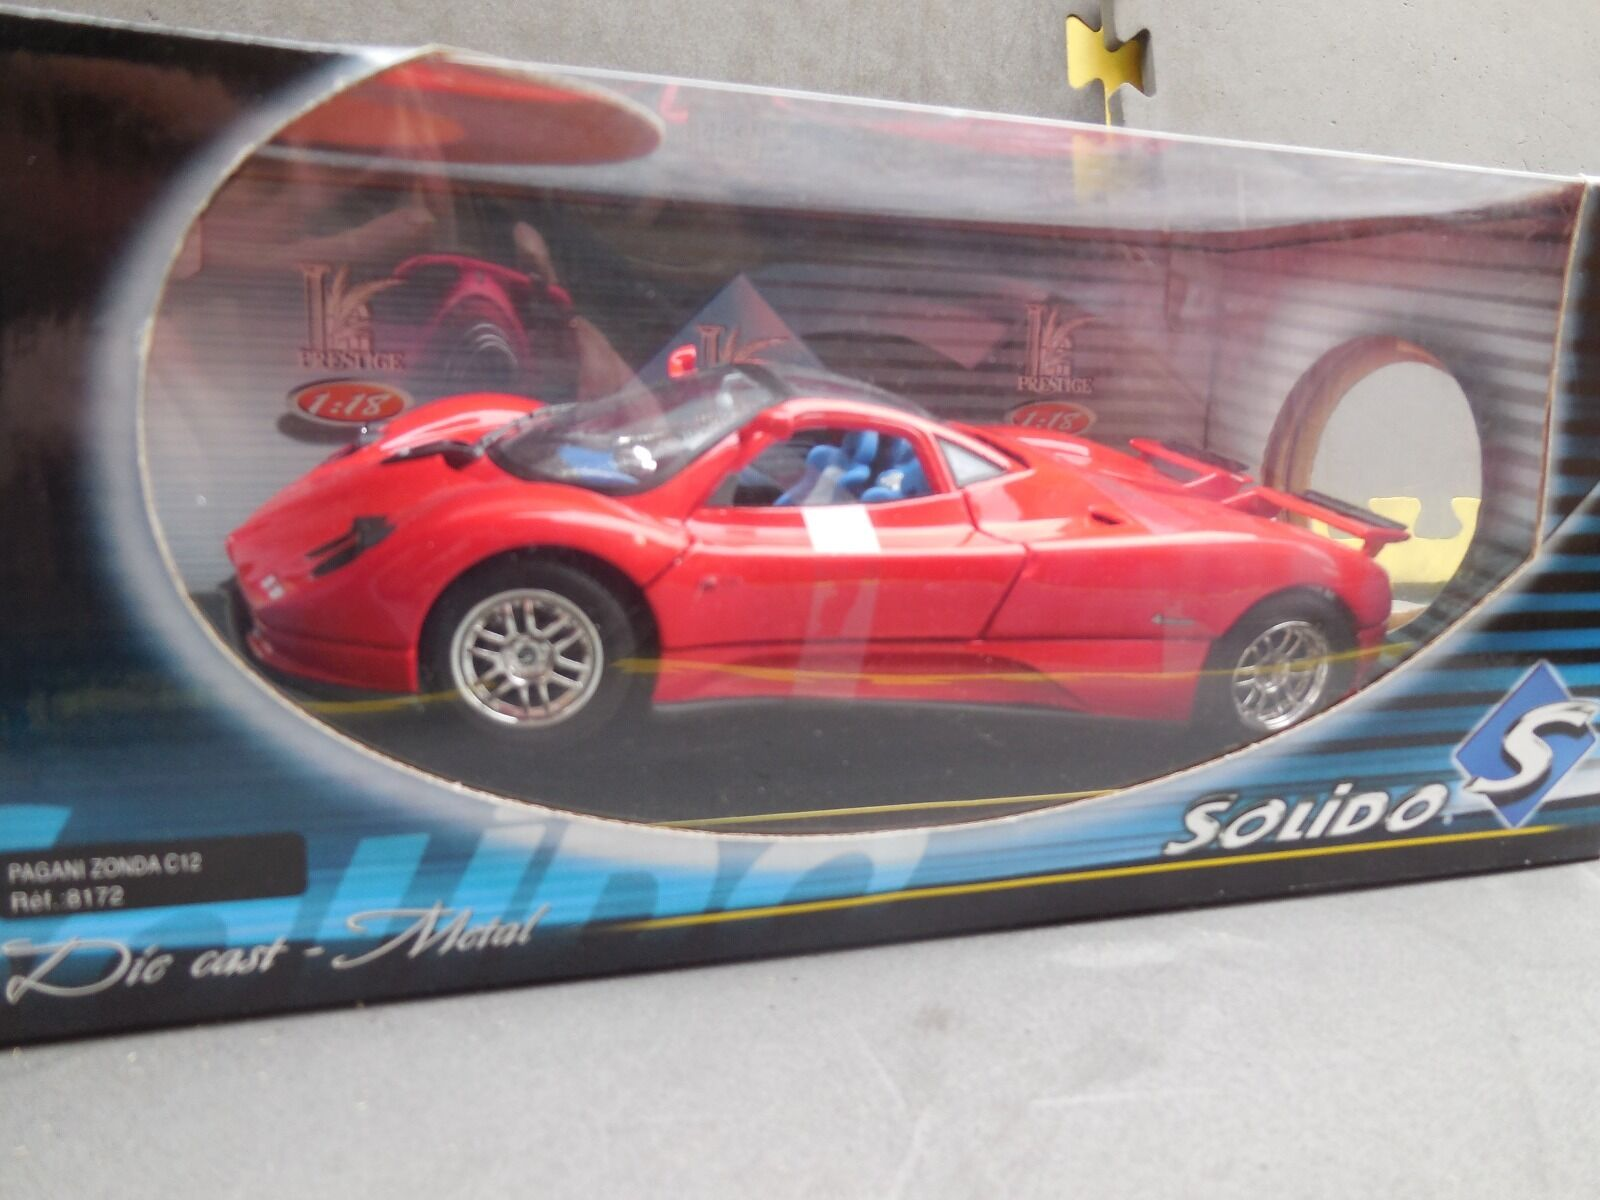 SOLIDO 1 18 Pagani Zonda C12 Die-Cast Collectors Model Car REF 8172